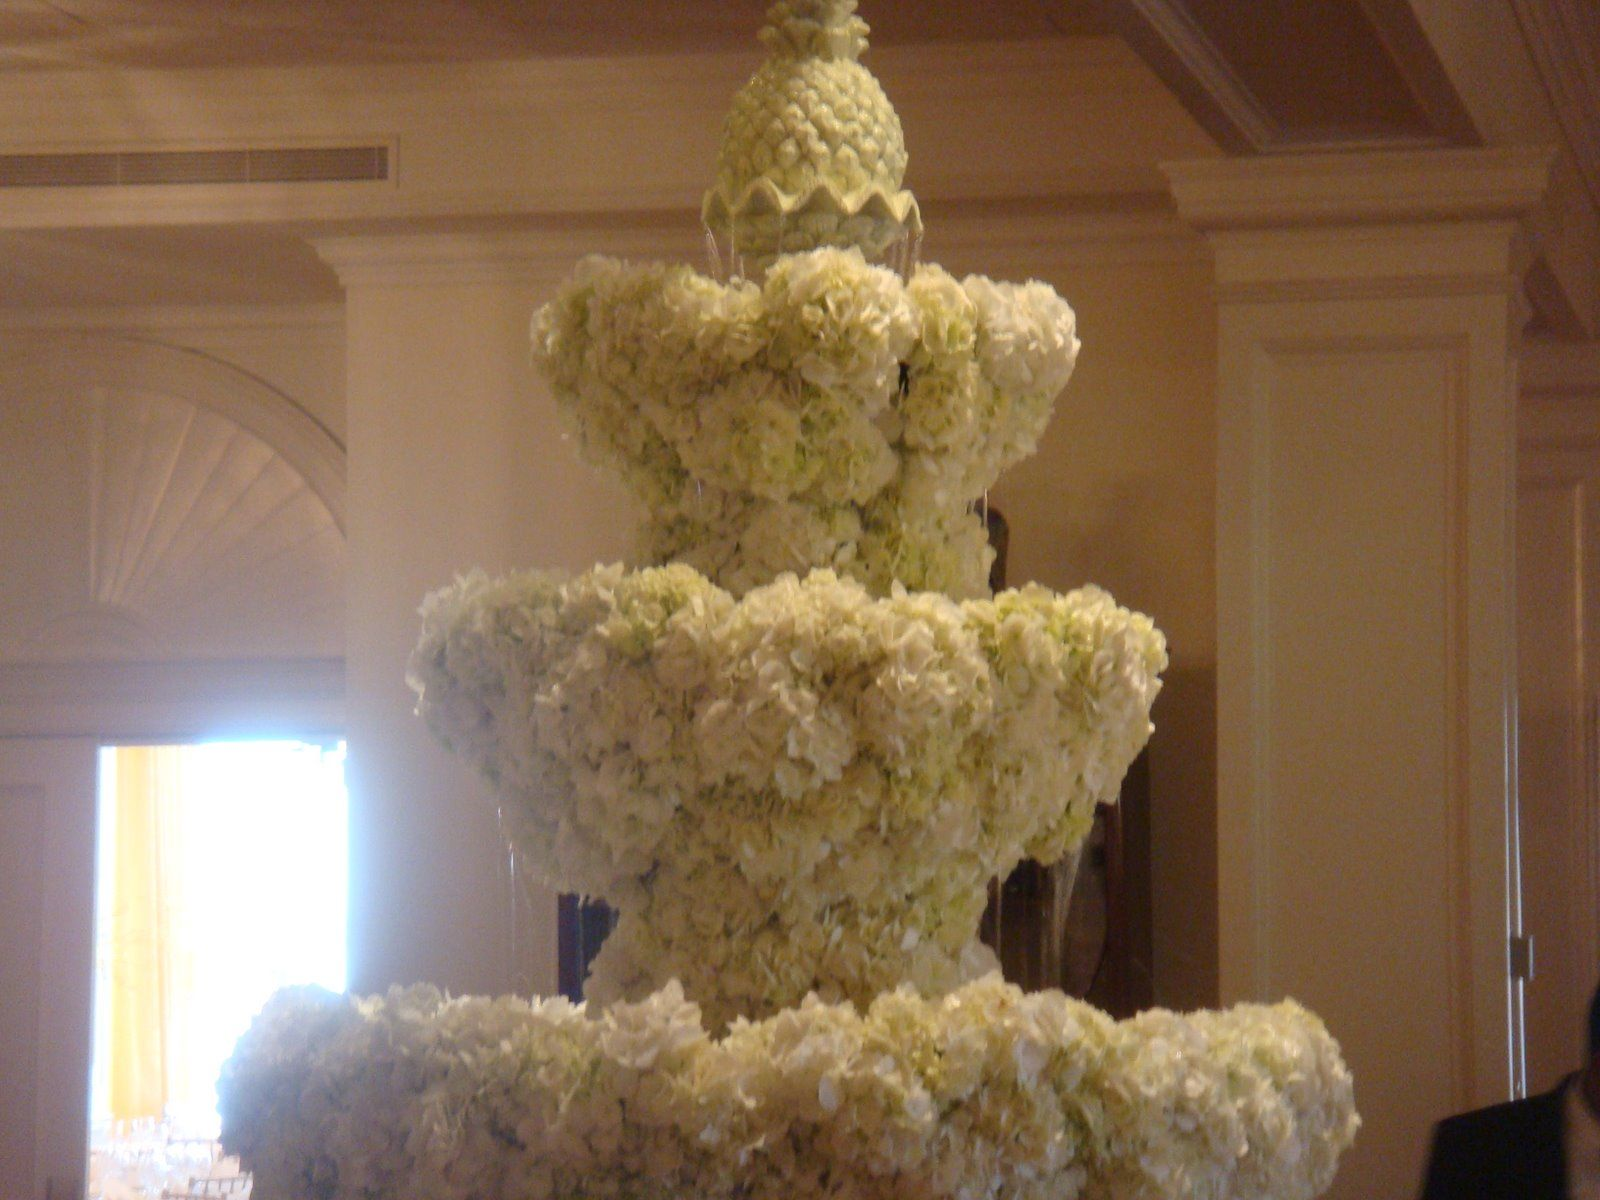 9 feet tall fountain covered with flowers hows that for a